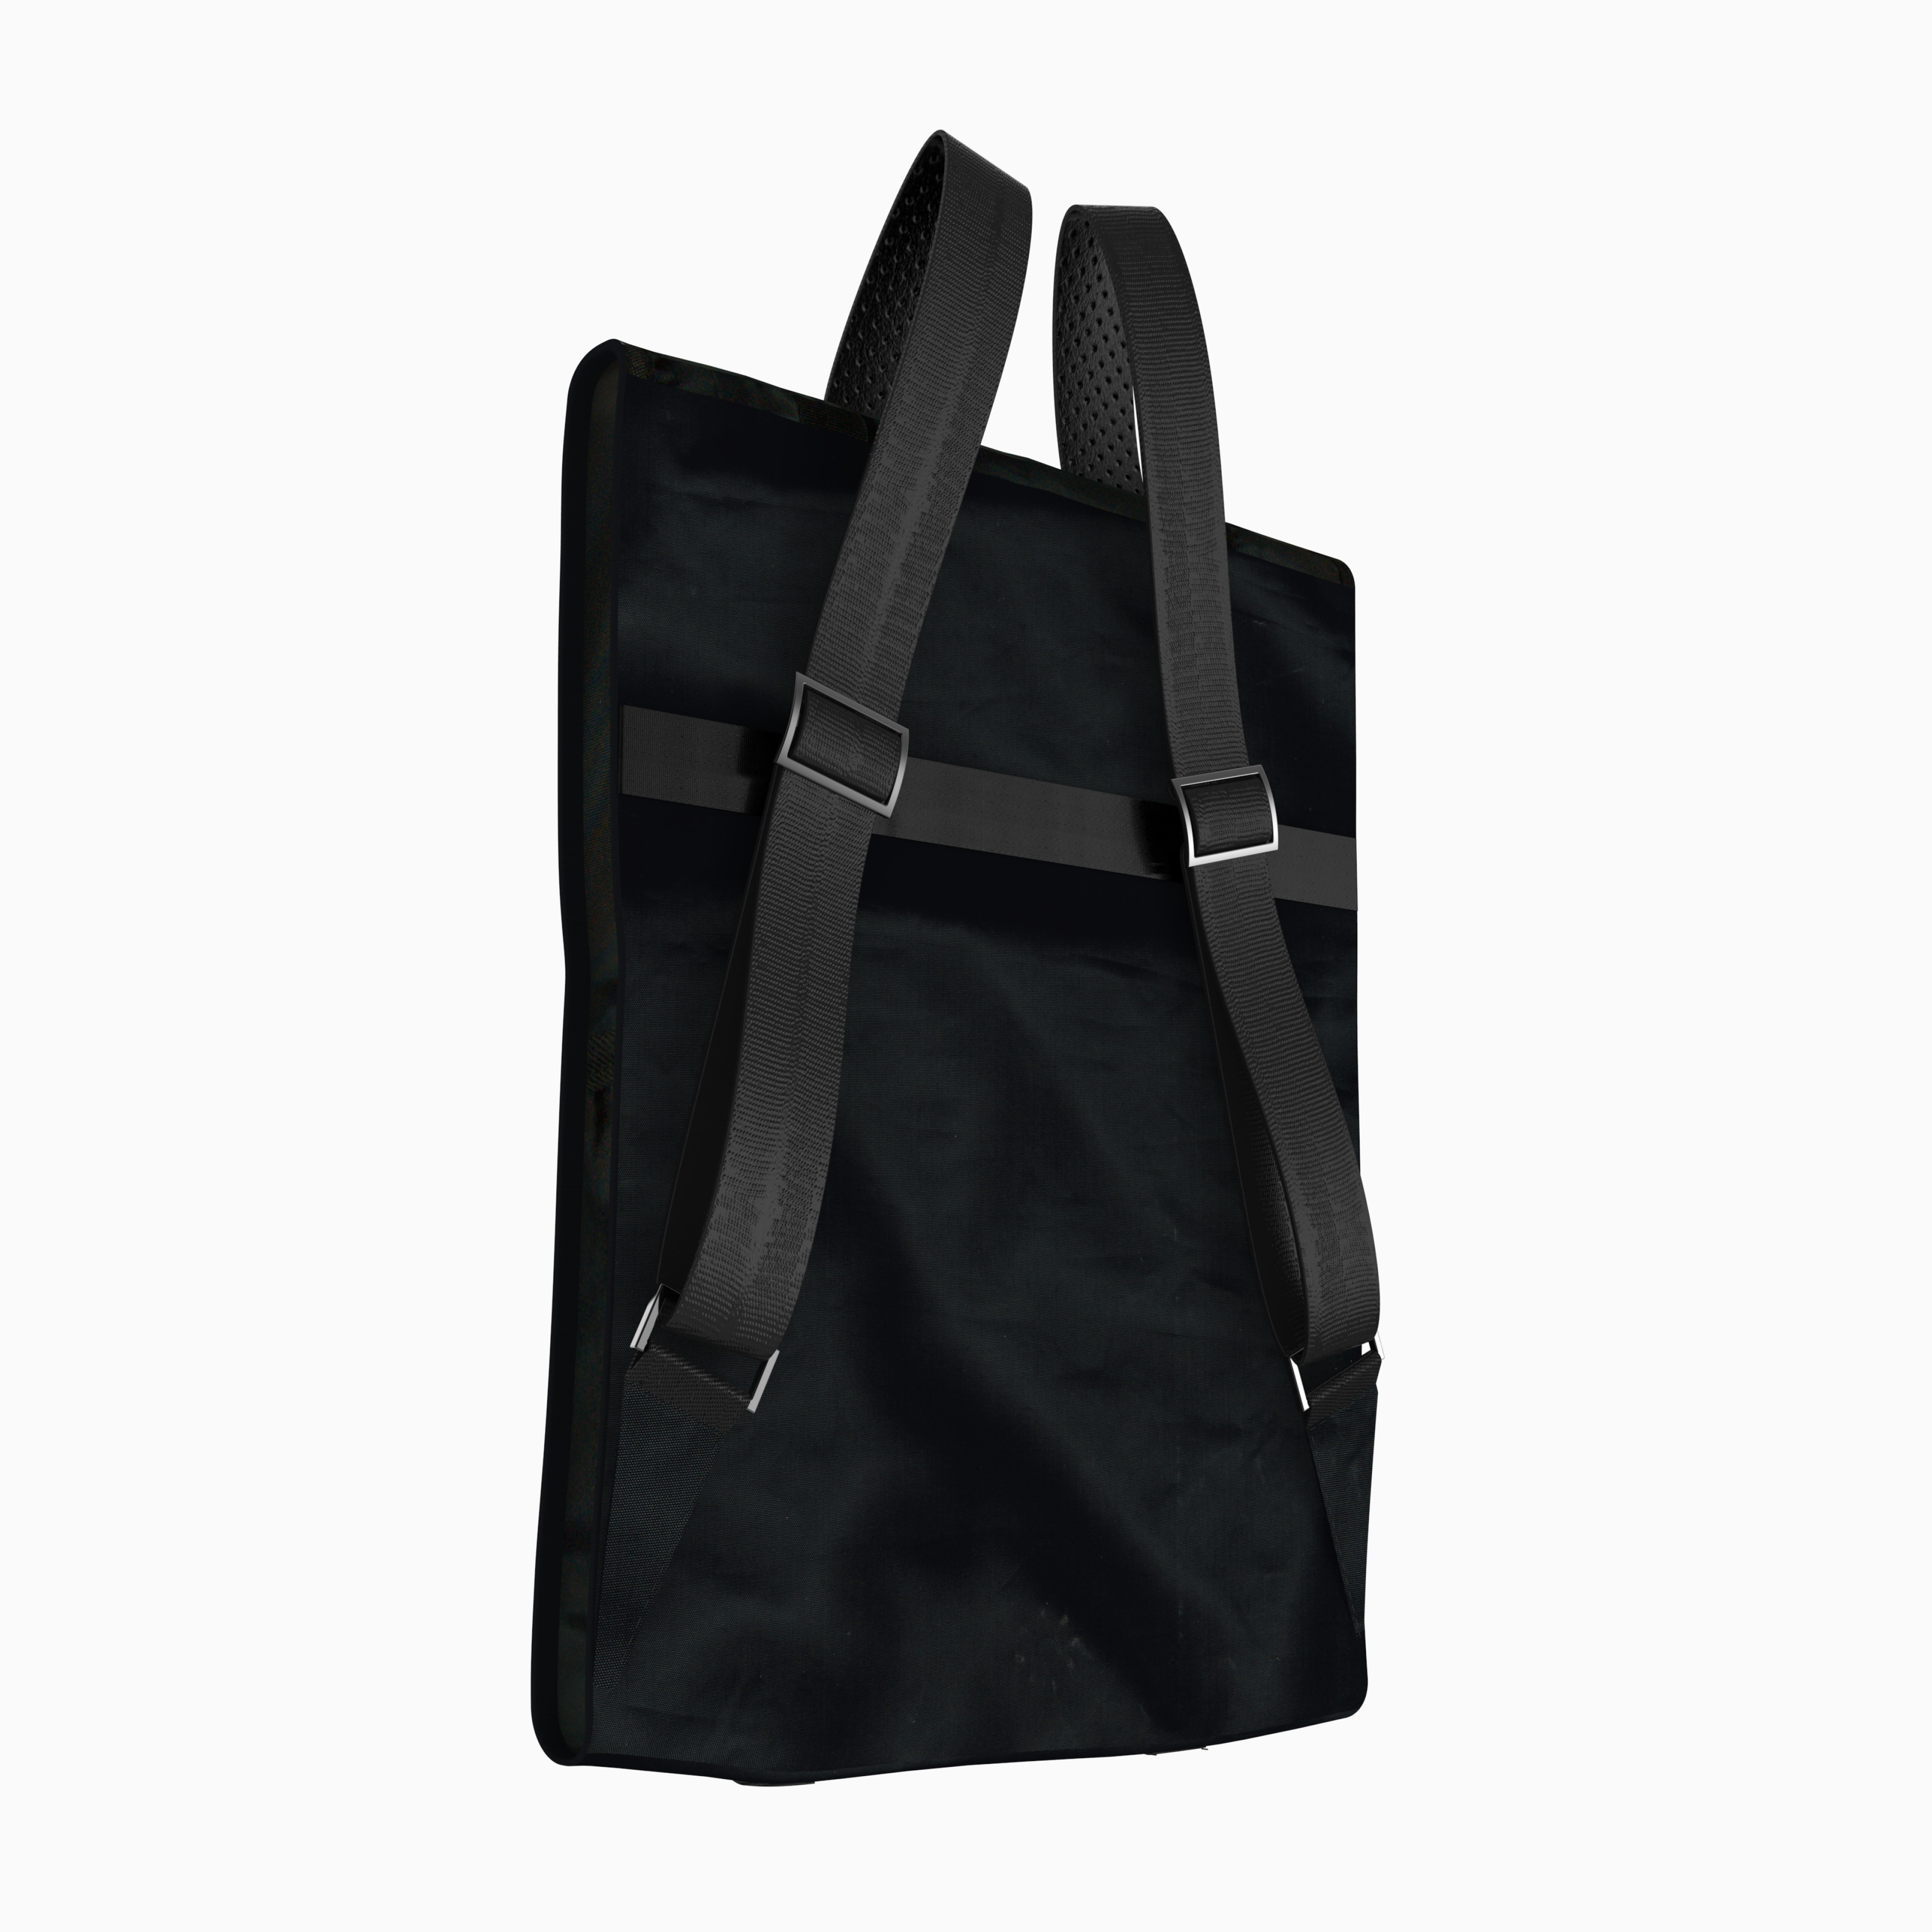 Sottile, The ultra-thin backpack